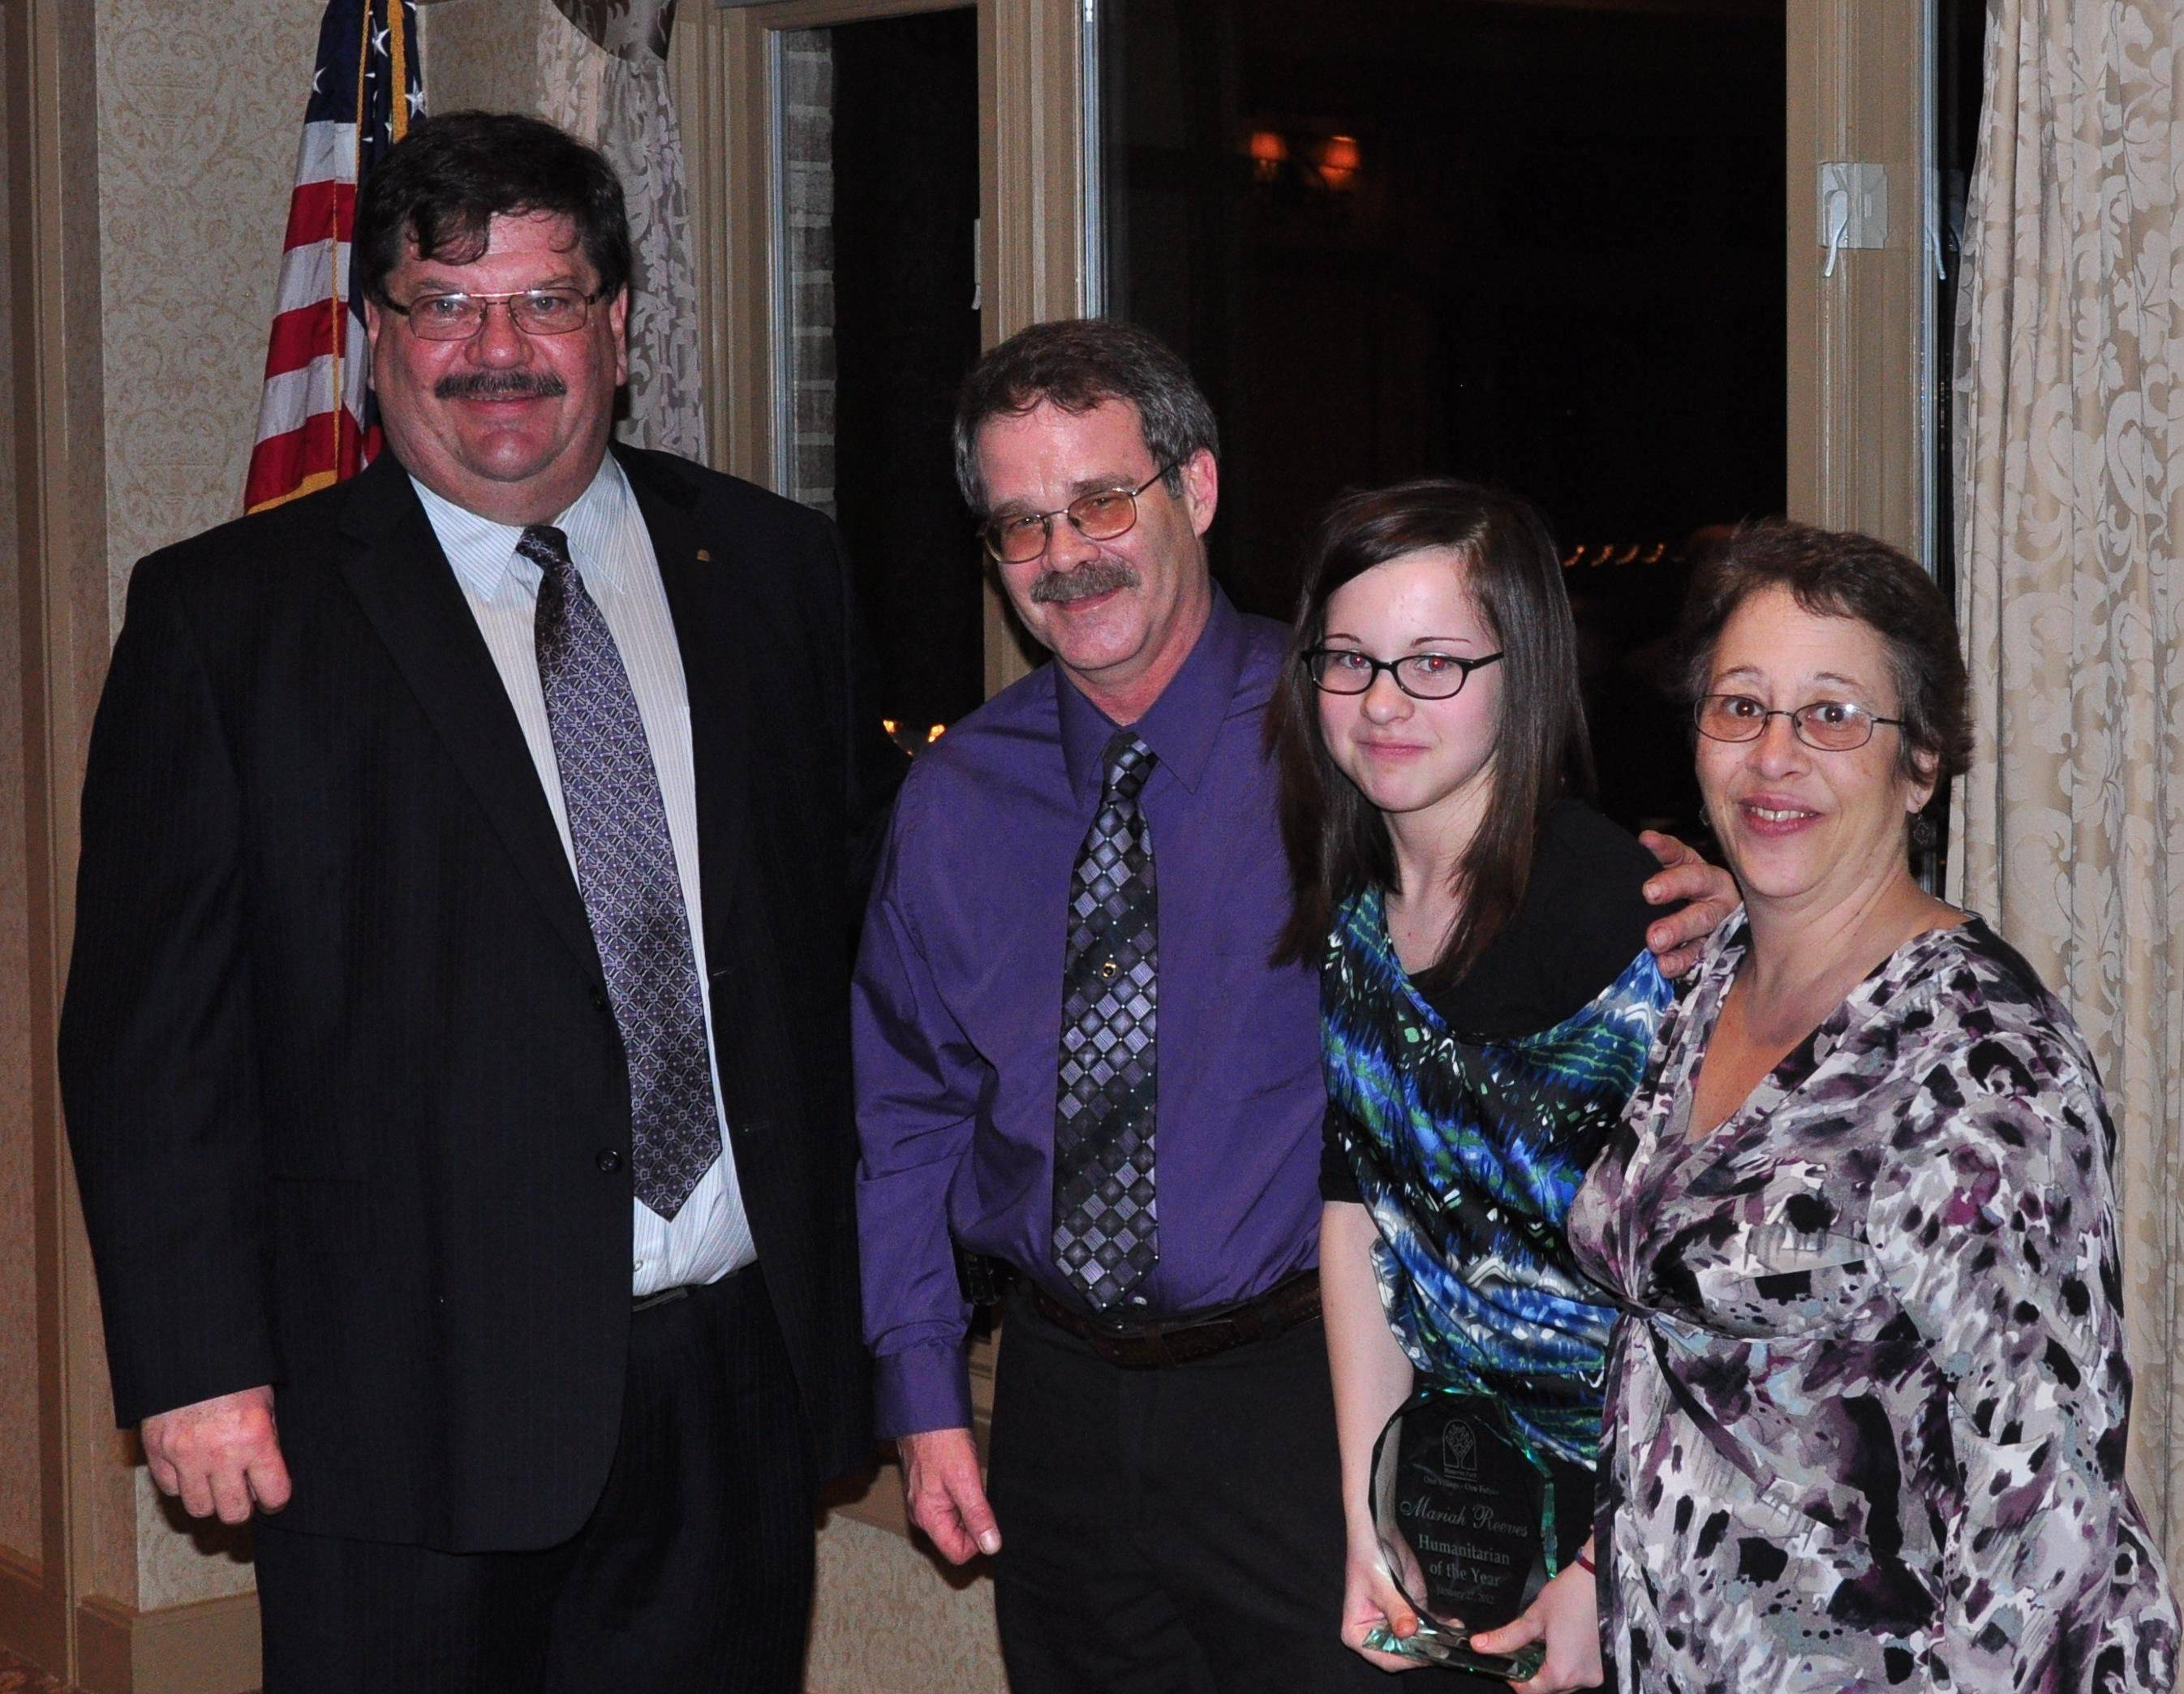 Hanover Park Mayor Rod Craig congratulates Mariah Reeves, 12, standing with her parents, for winning the village's Humanitarian of the Year award. Reeves earned the award by donating a portion of the gifts she received from her bat mitzvah to the family of a 3-year-old boy in need of a kidney transplant.